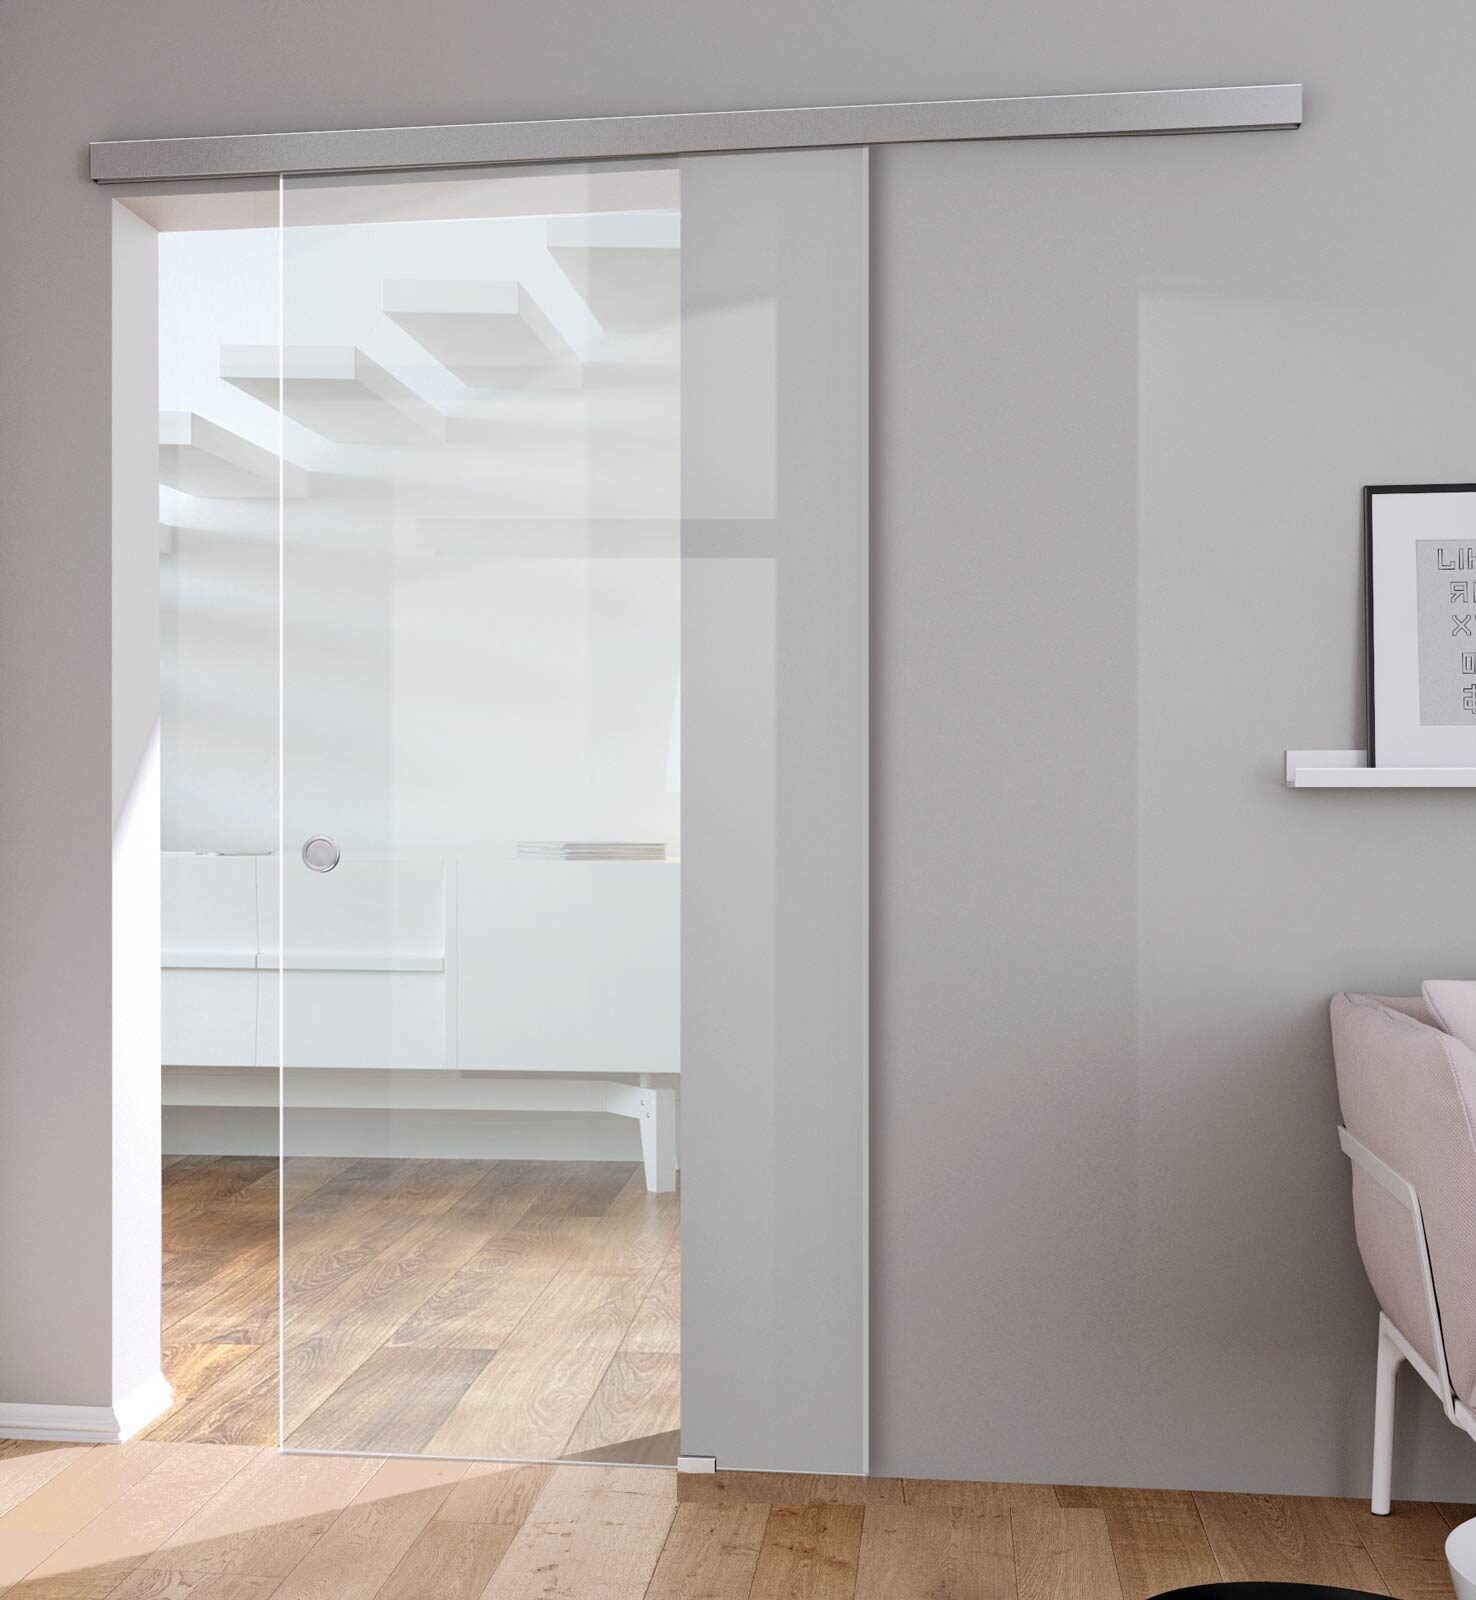 SINGLE SLIDING GLASS DOORS